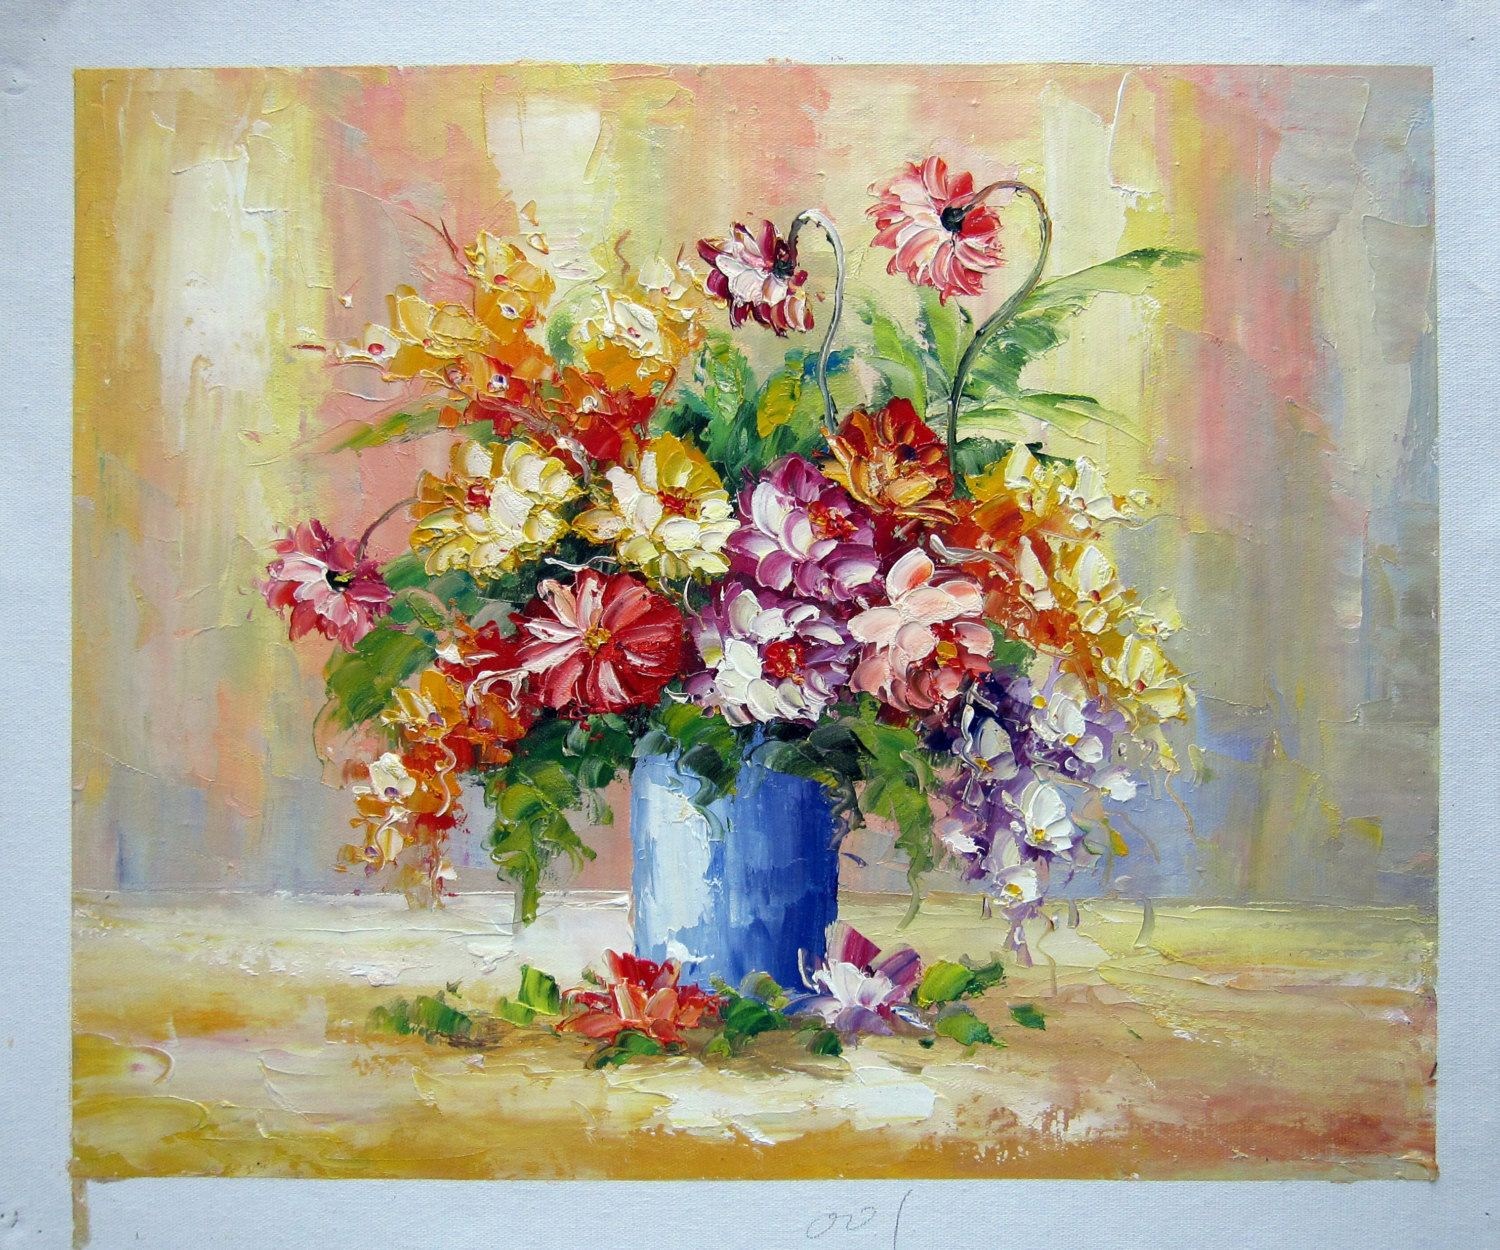 "16"" by 20"" - Flower in vase - Nr.030 - Museum Quality Oil Painting on Canvas Art by Artseasy on Etsy"